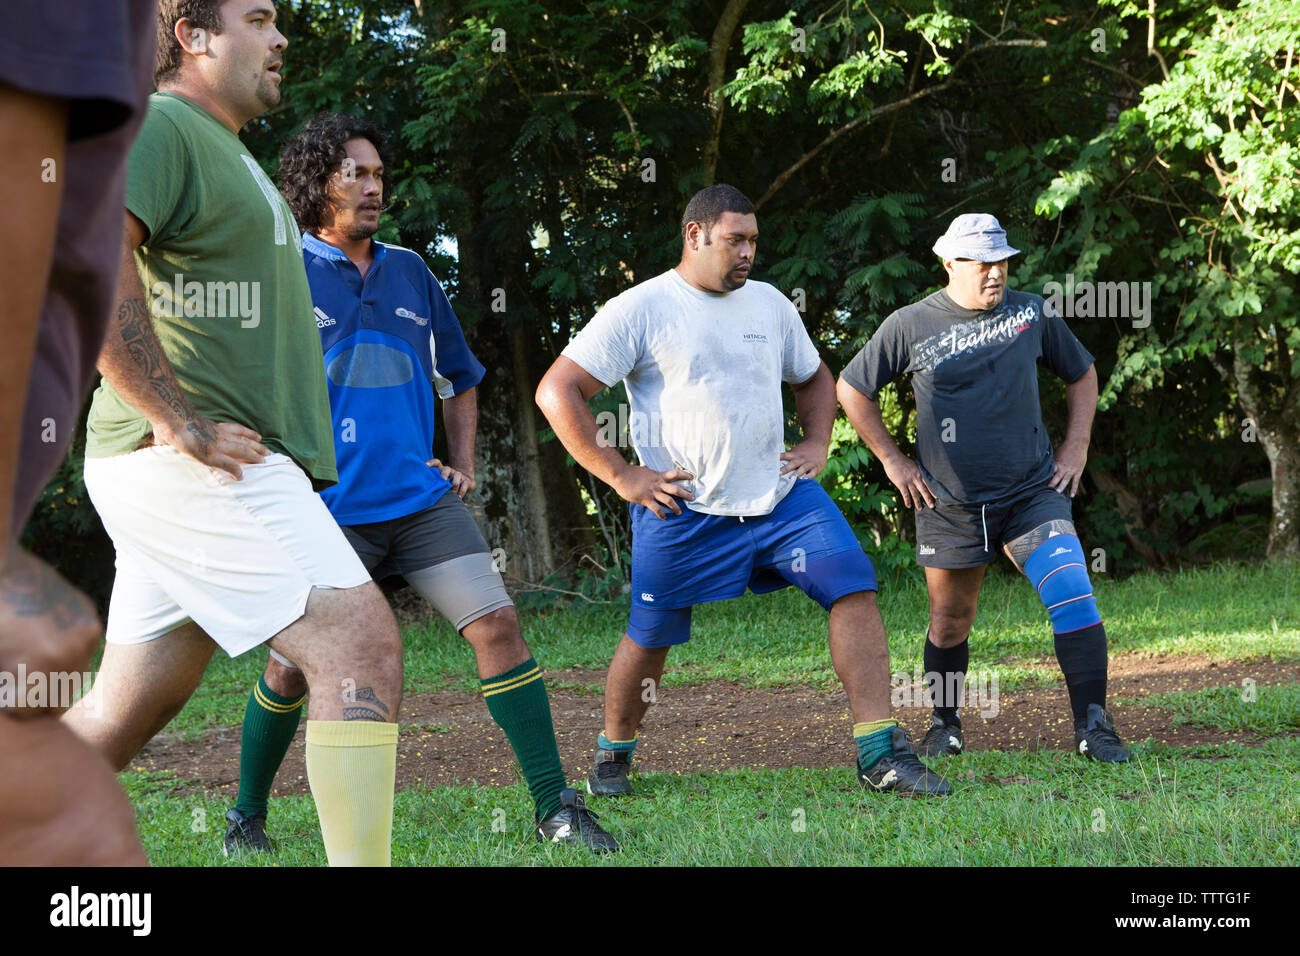 FRENCH POLYNESIA, Moorea. A local rugby team called Team Rotui practicing at Uop honu Park in Moorea Island. Stock Photo